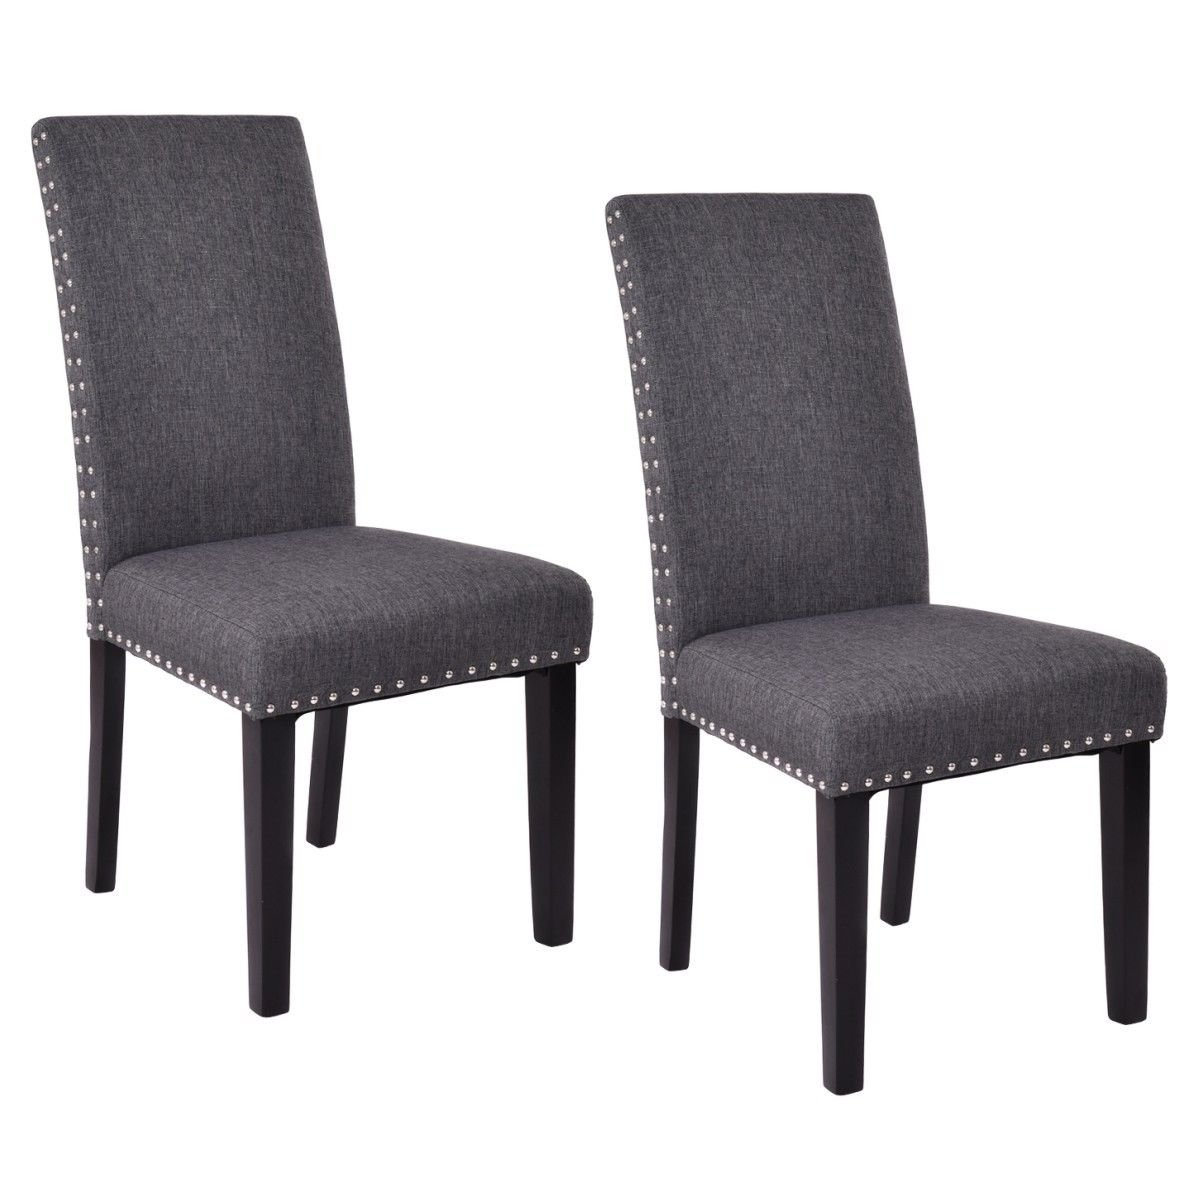 Giantex Set of 2 Dining Chairs Fabric Upholstered Armless Accent Home Kitchen Furniture (Gray)